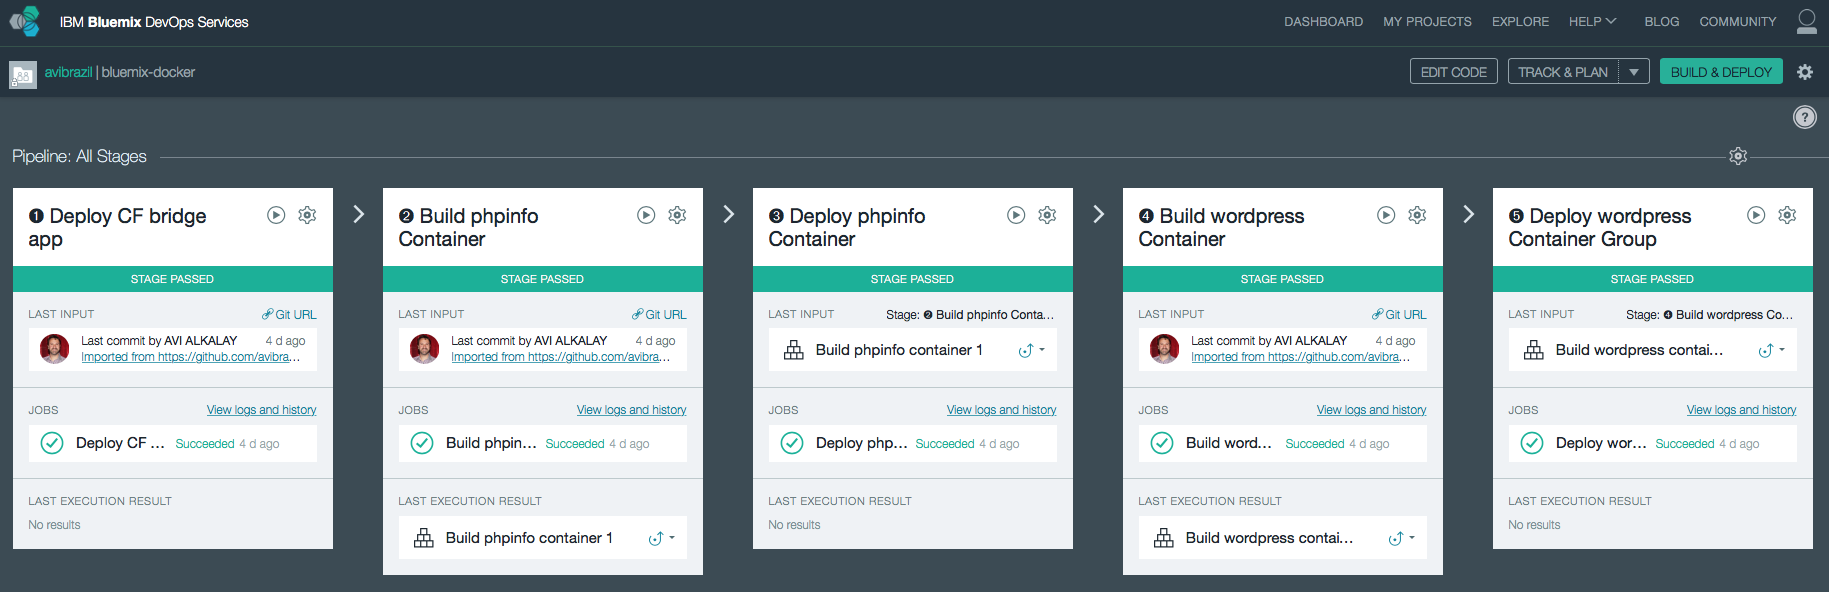 Full Delivery Pipeline on Bluemix